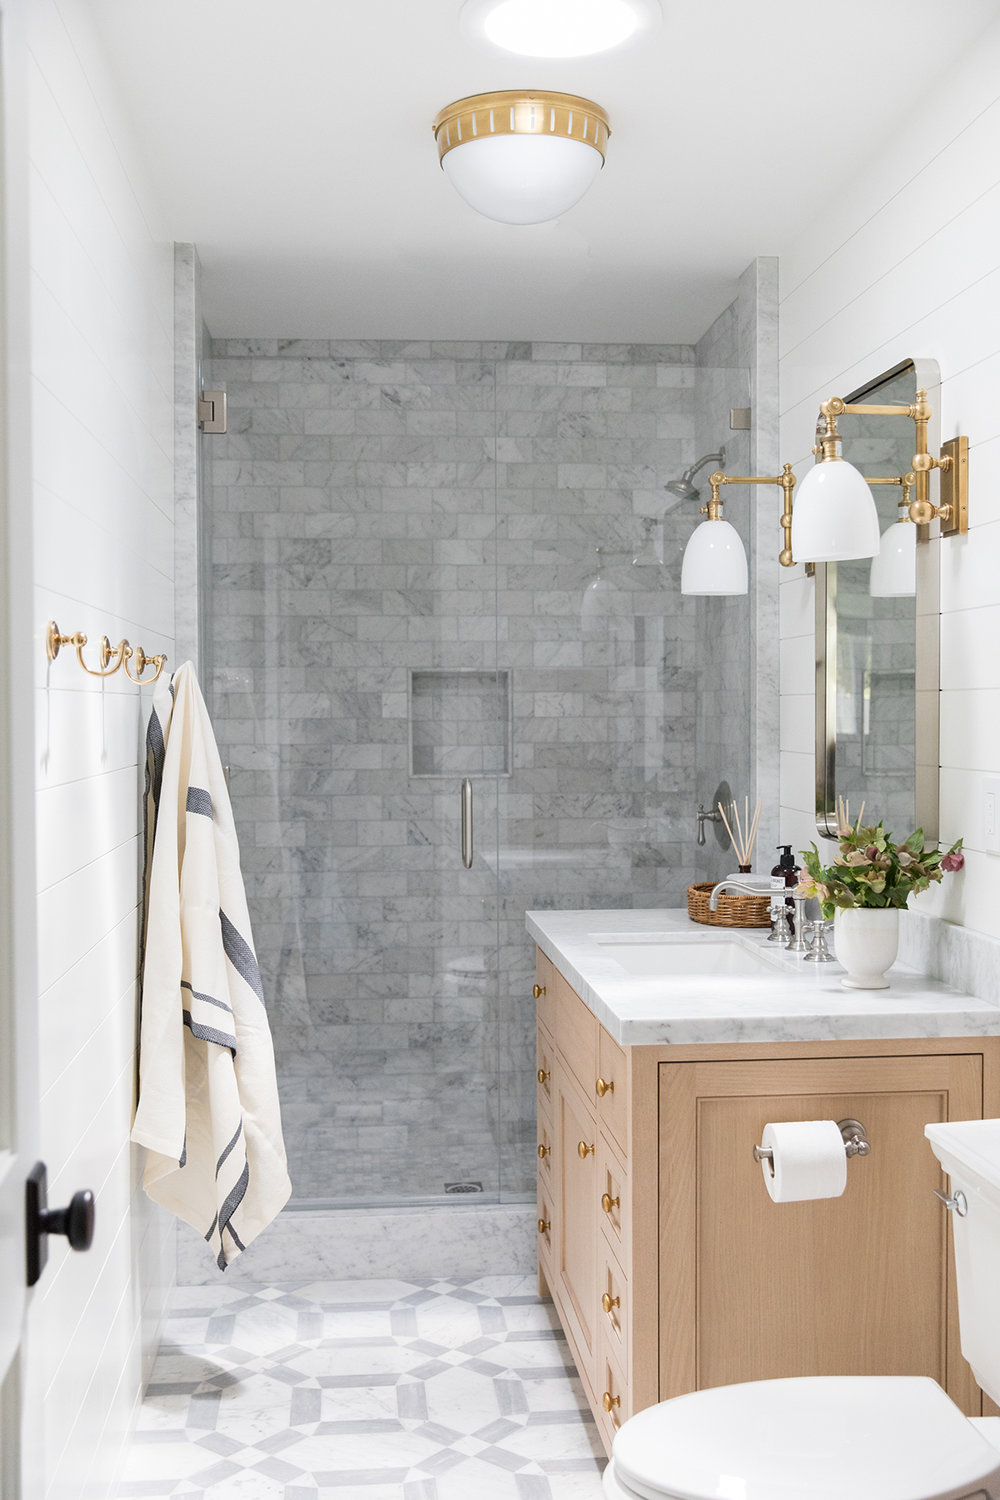 Bathroom+with+marbled+tile,+countertops,+marble+showe,+brass+&+marble+bathroom,+coastal+bathroom+_+Studio+McGee+Blog.jpg